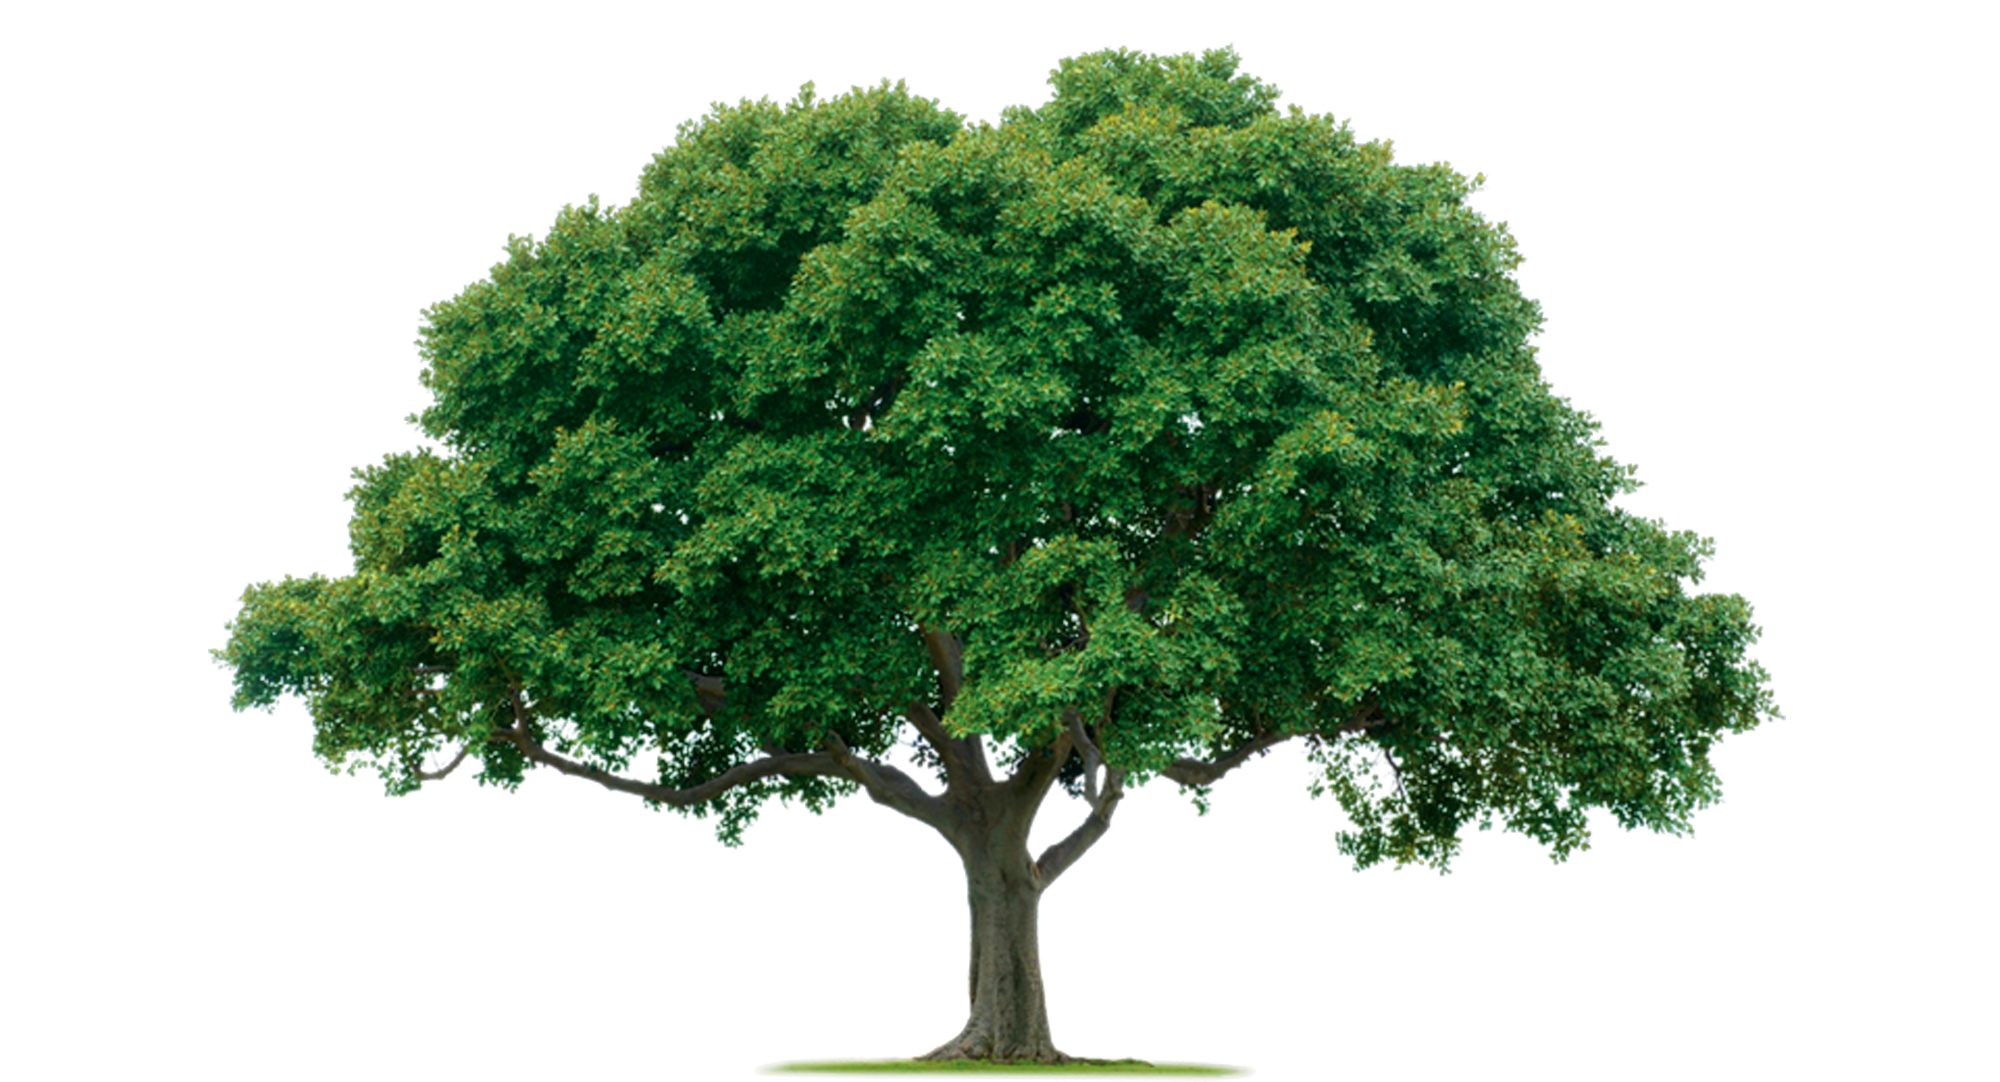 Png Format Images Of Tree image #779